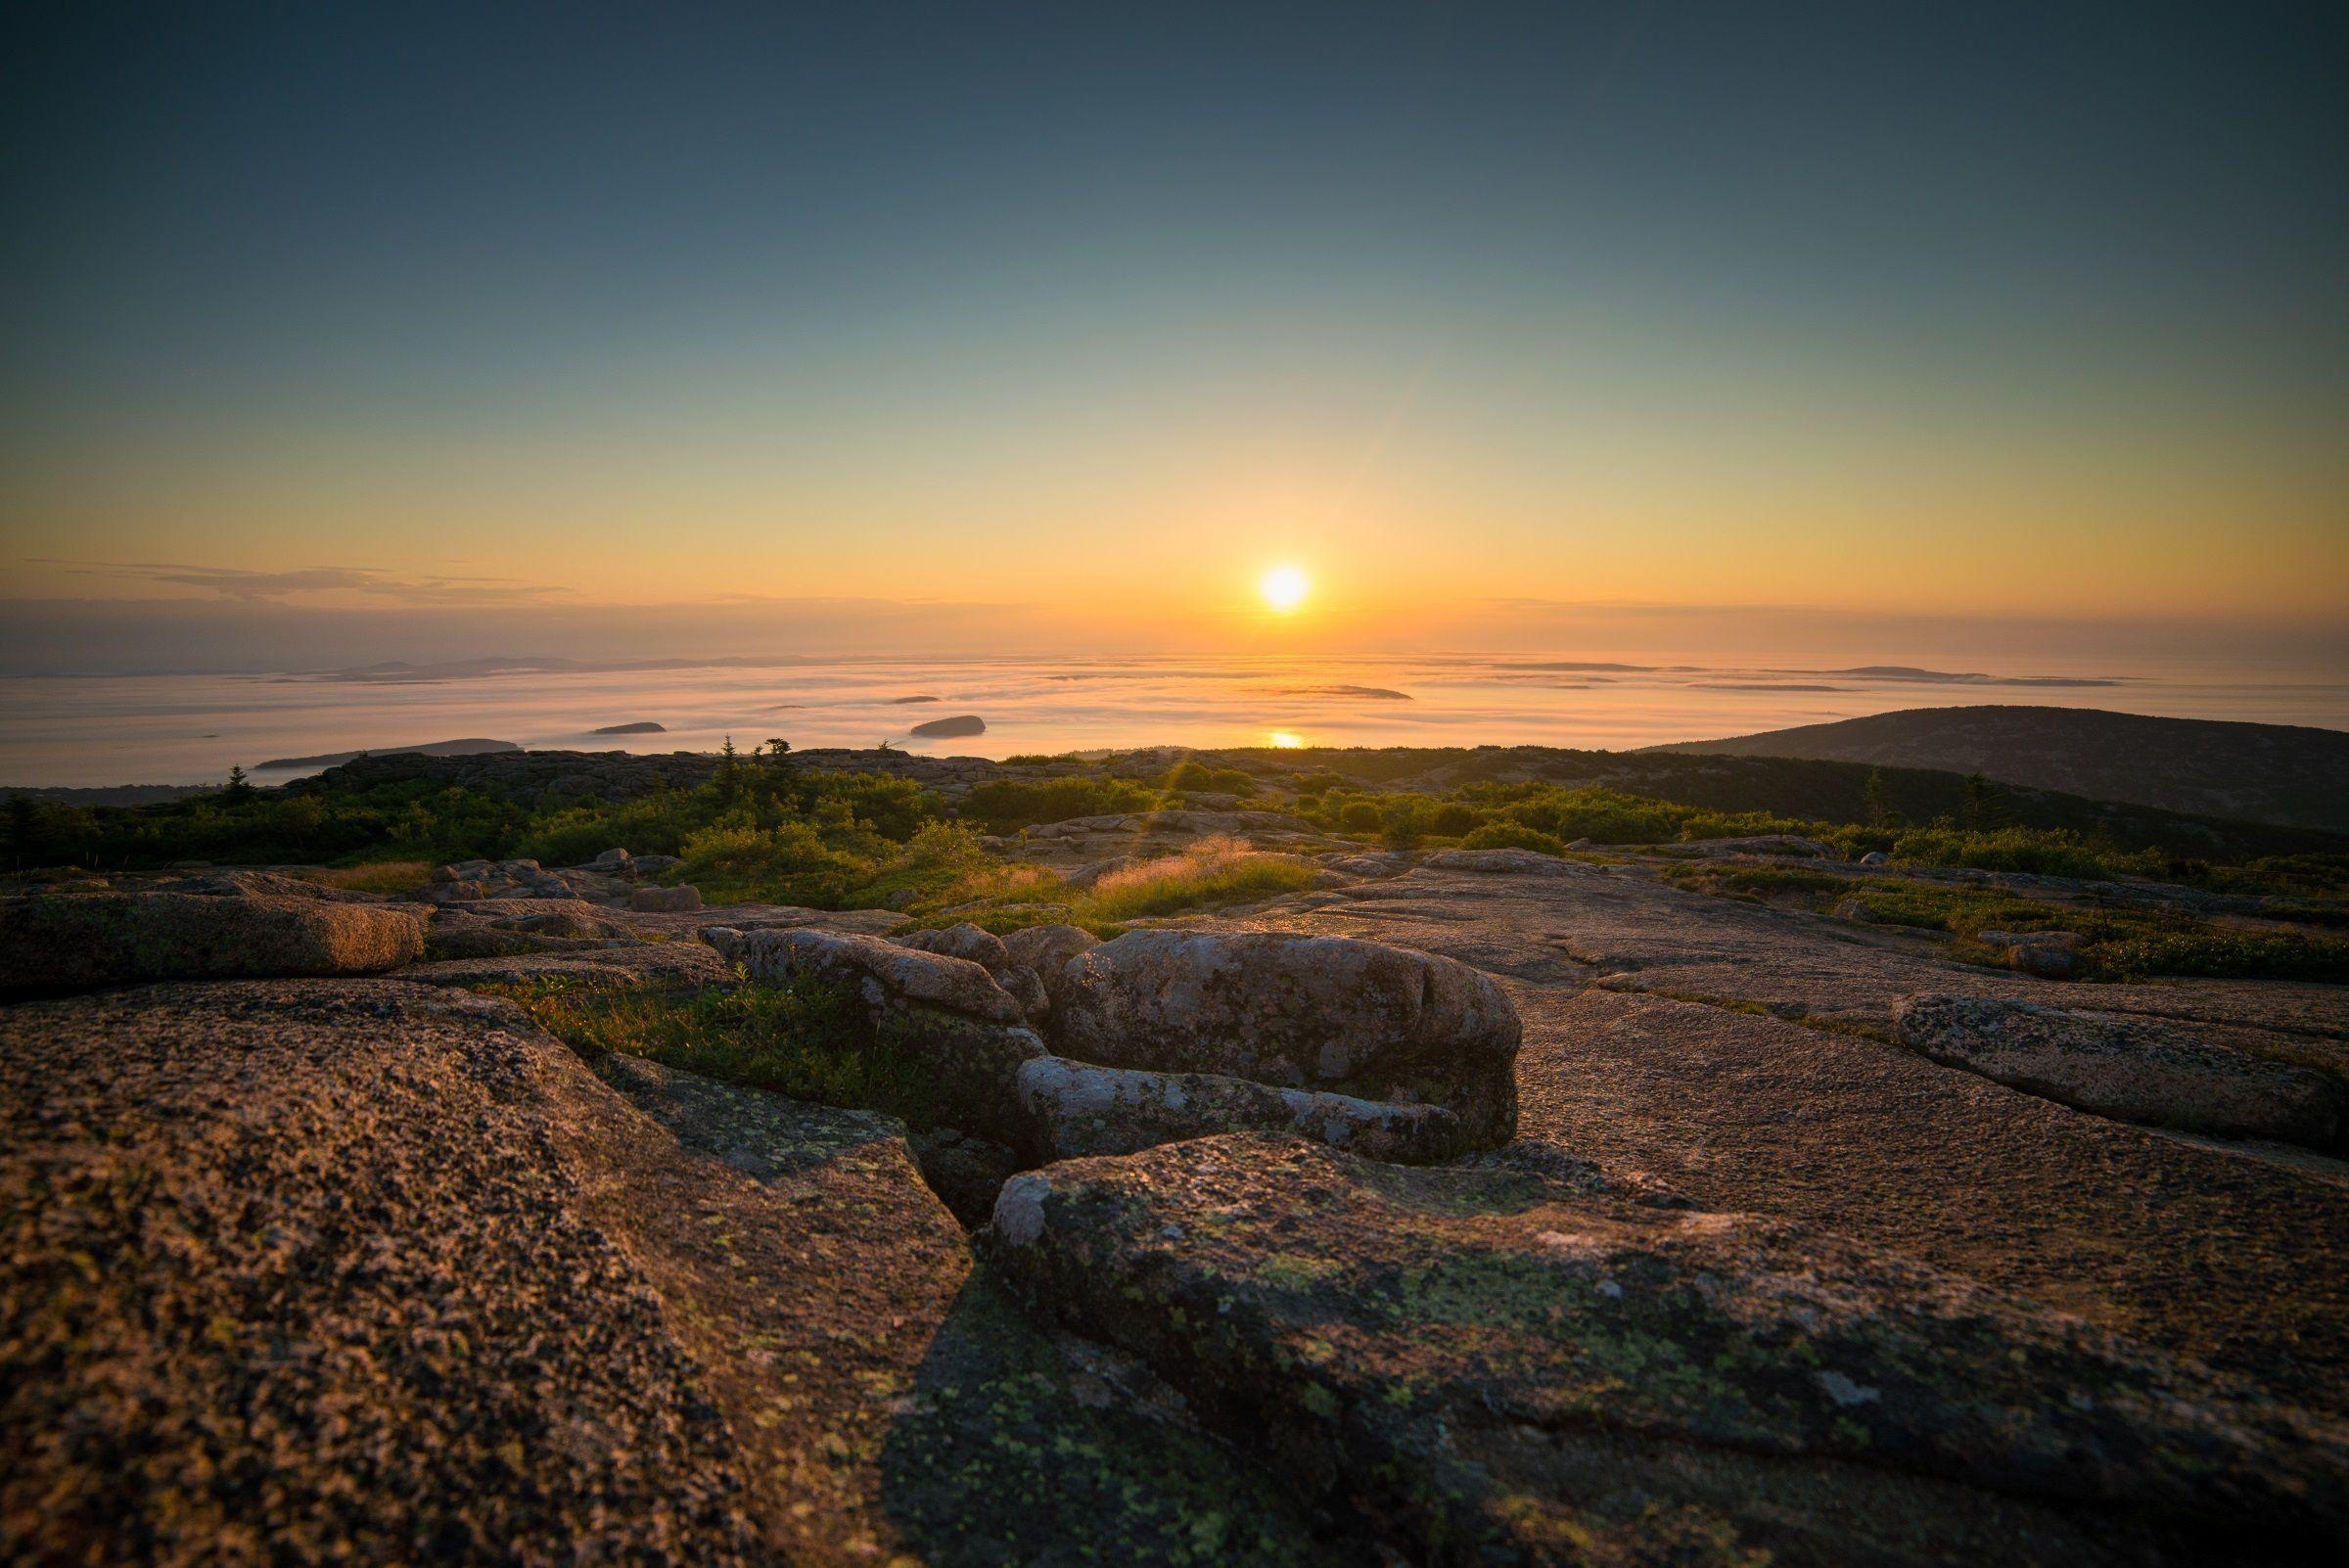 Cadillac Mountain is located on Mount Desert Island, within Acadia